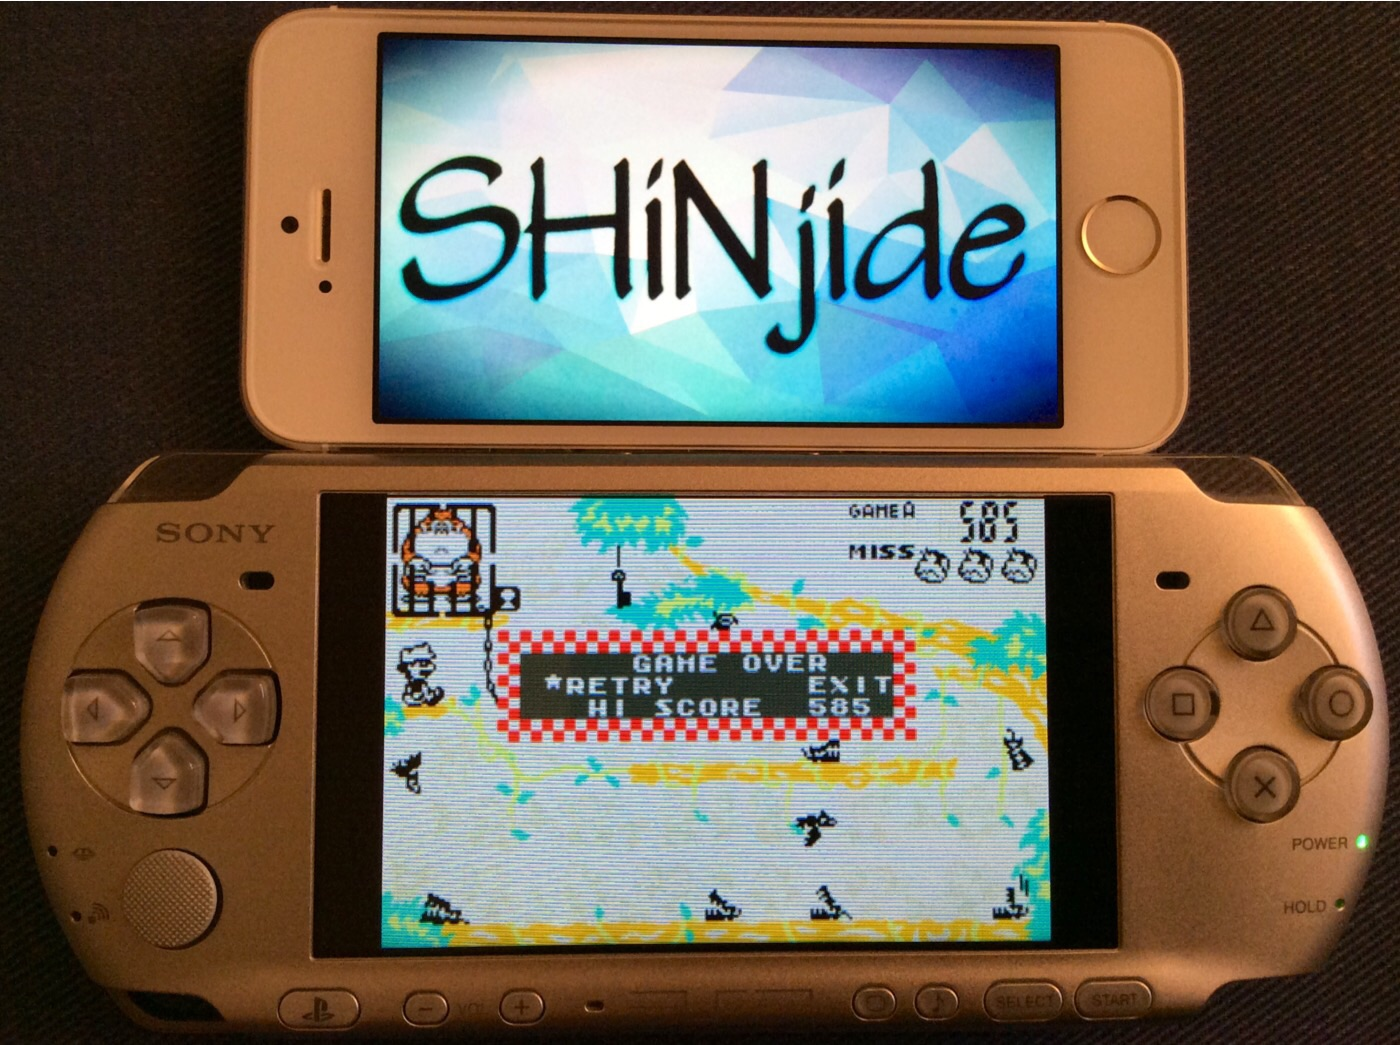 SHiNjide: Game & Watch Gallery 4: Donkey Kong Jr. [Classic: Easy] (GBA Emulated) 585 points on 2014-09-26 11:23:39